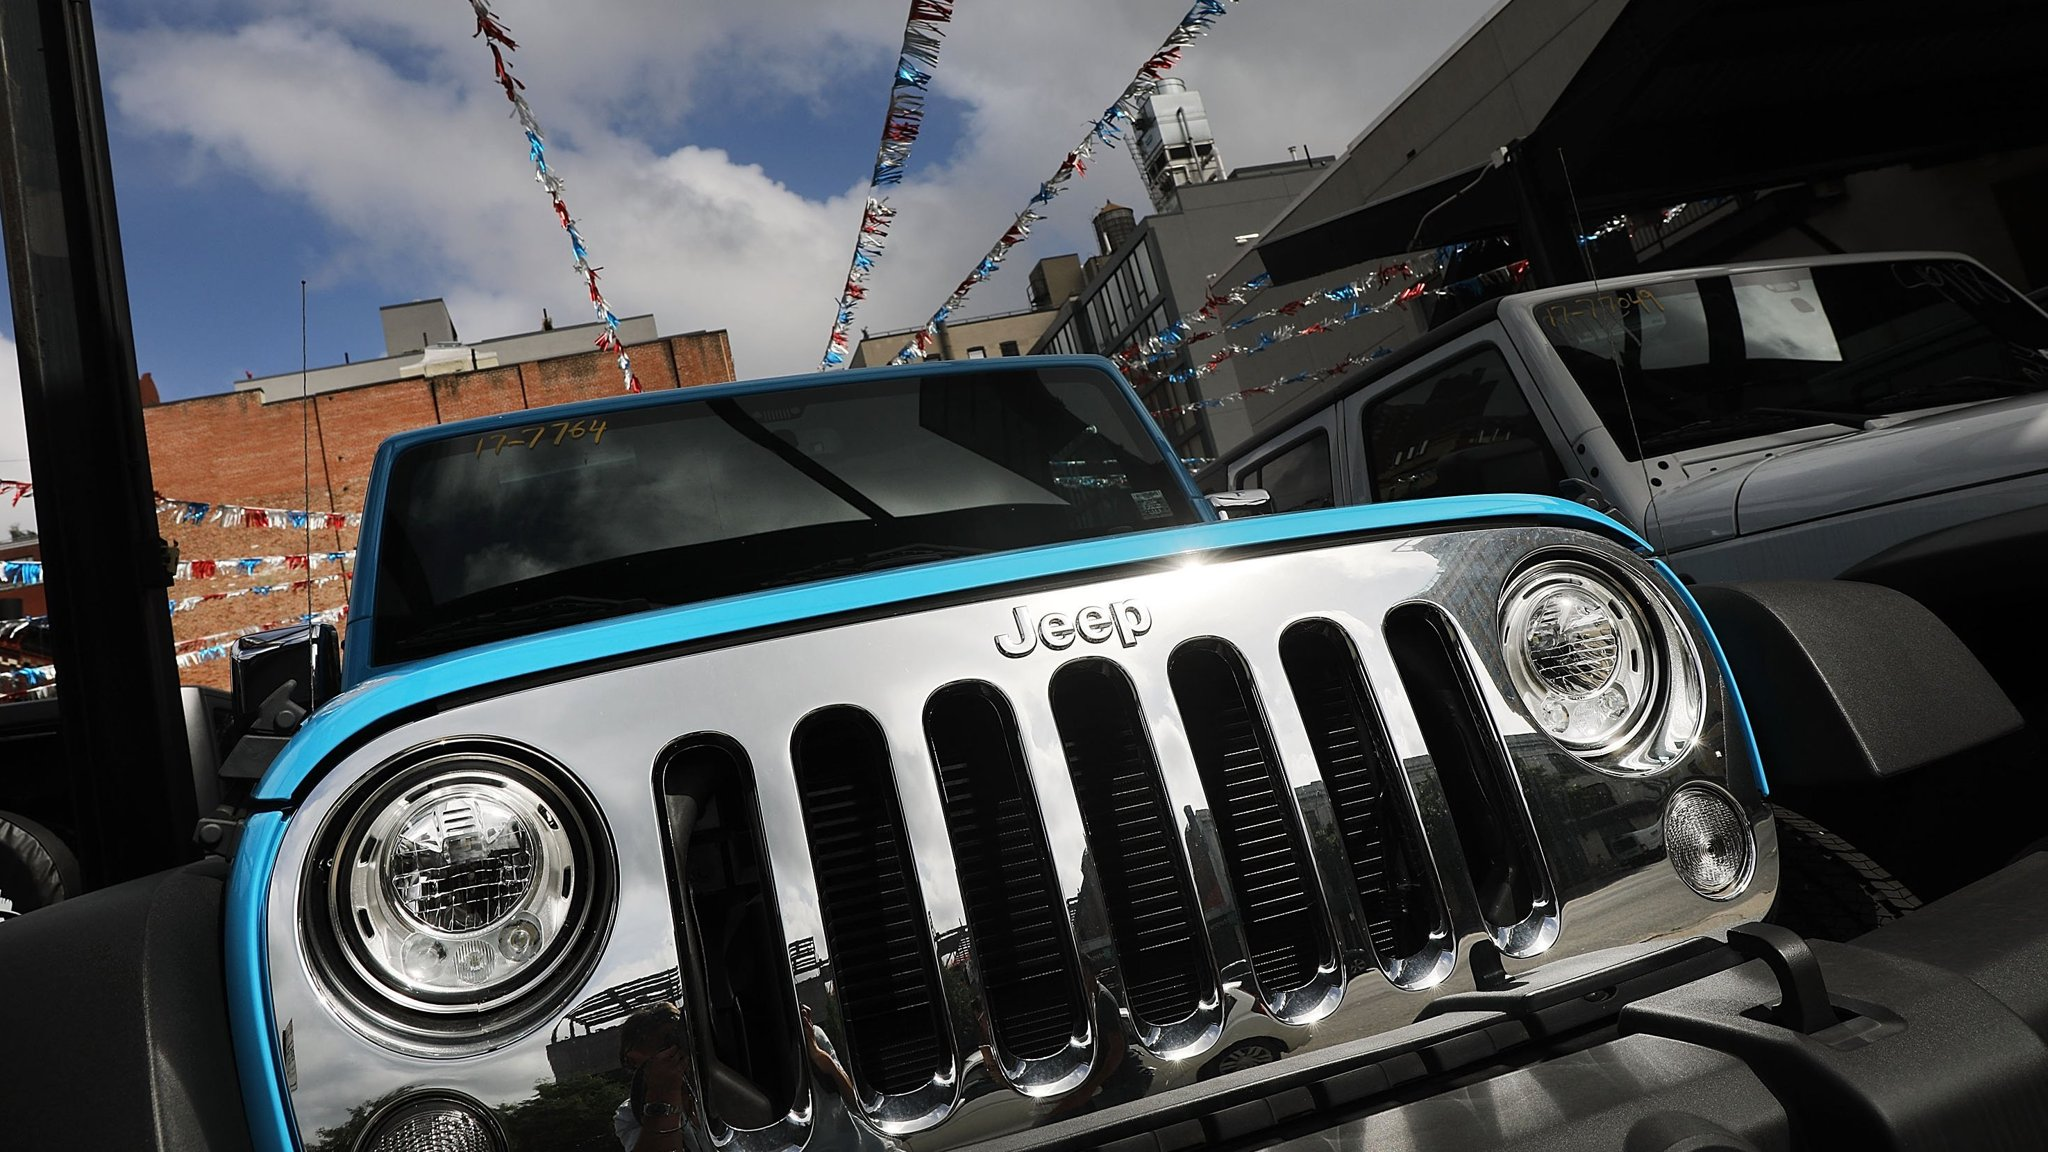 fiat chrysler agrees to pay $800m to settle emissions cheating case